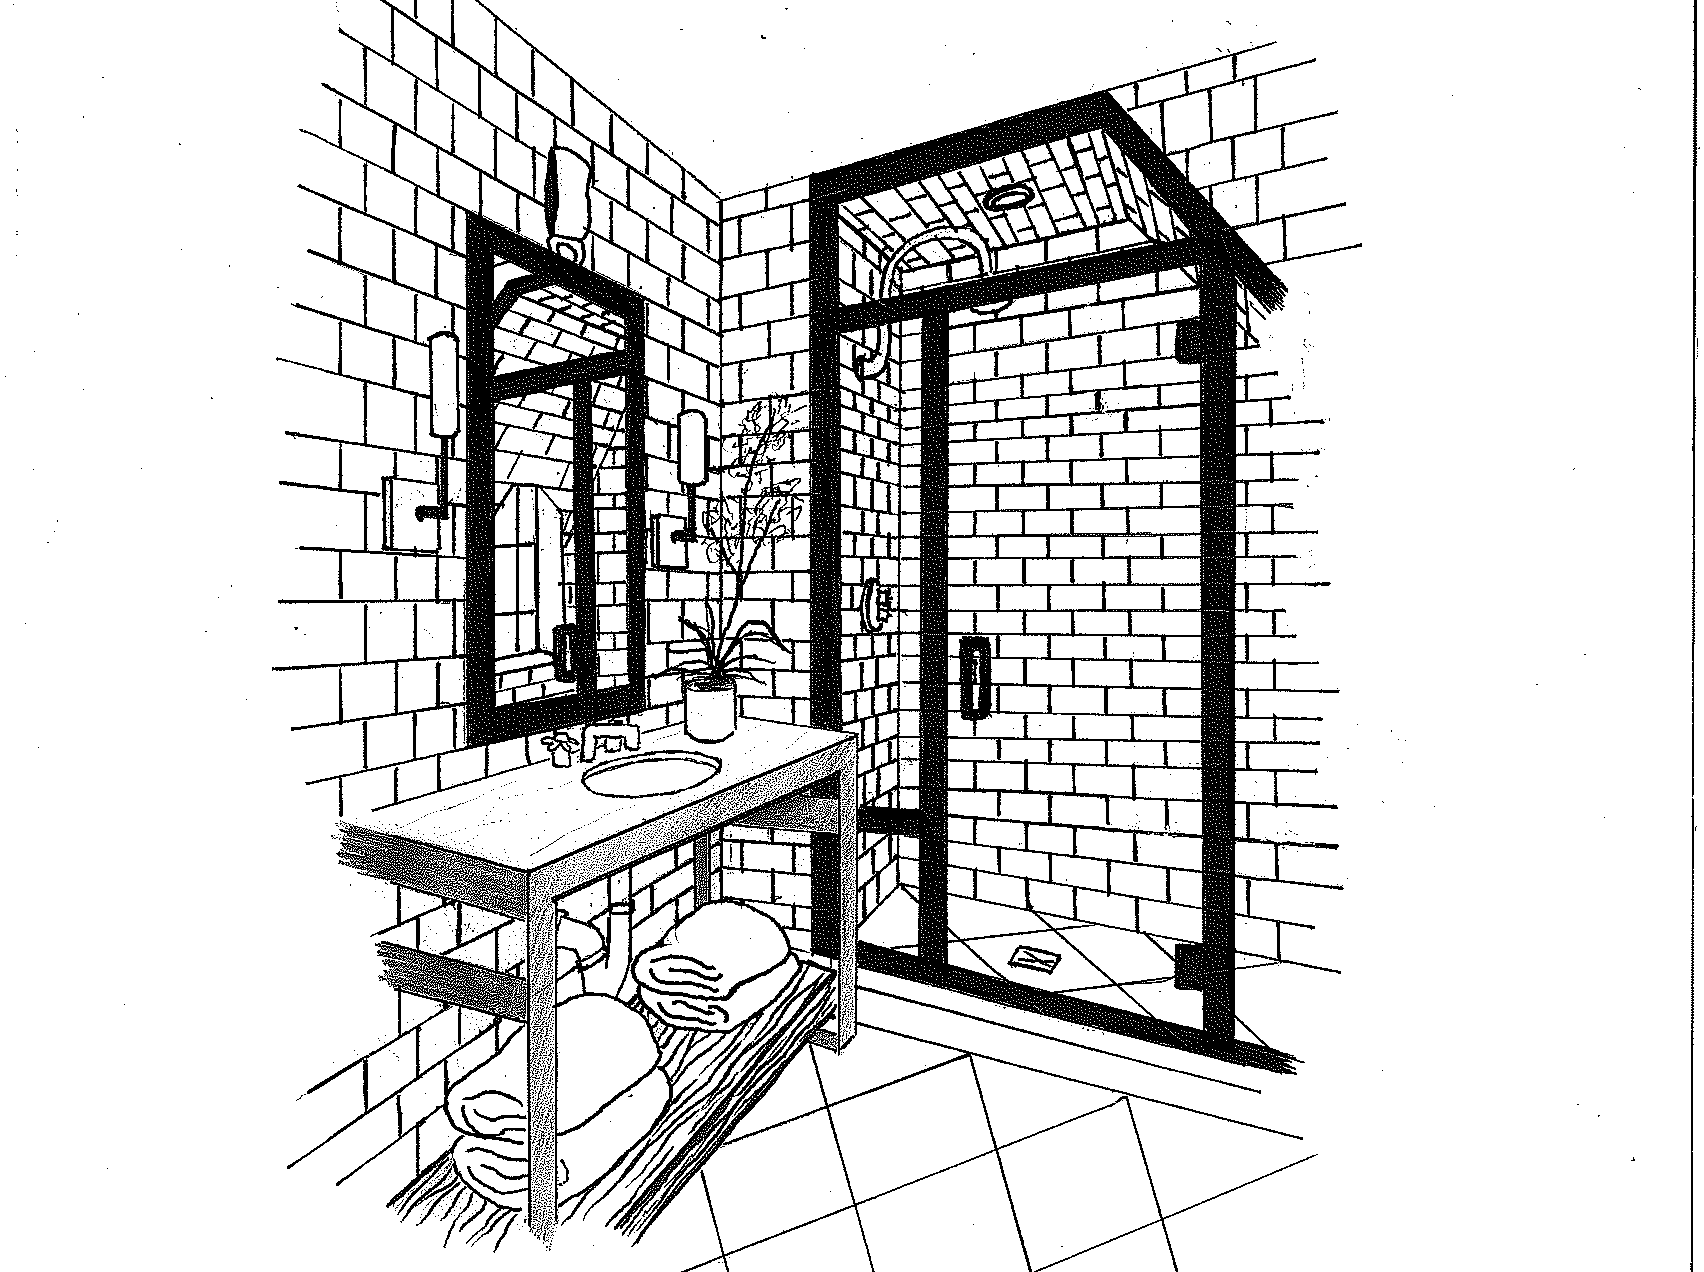 https://straightlinekitchens.com/wp-content/uploads/2018/02/1Bath-Sketch111.png